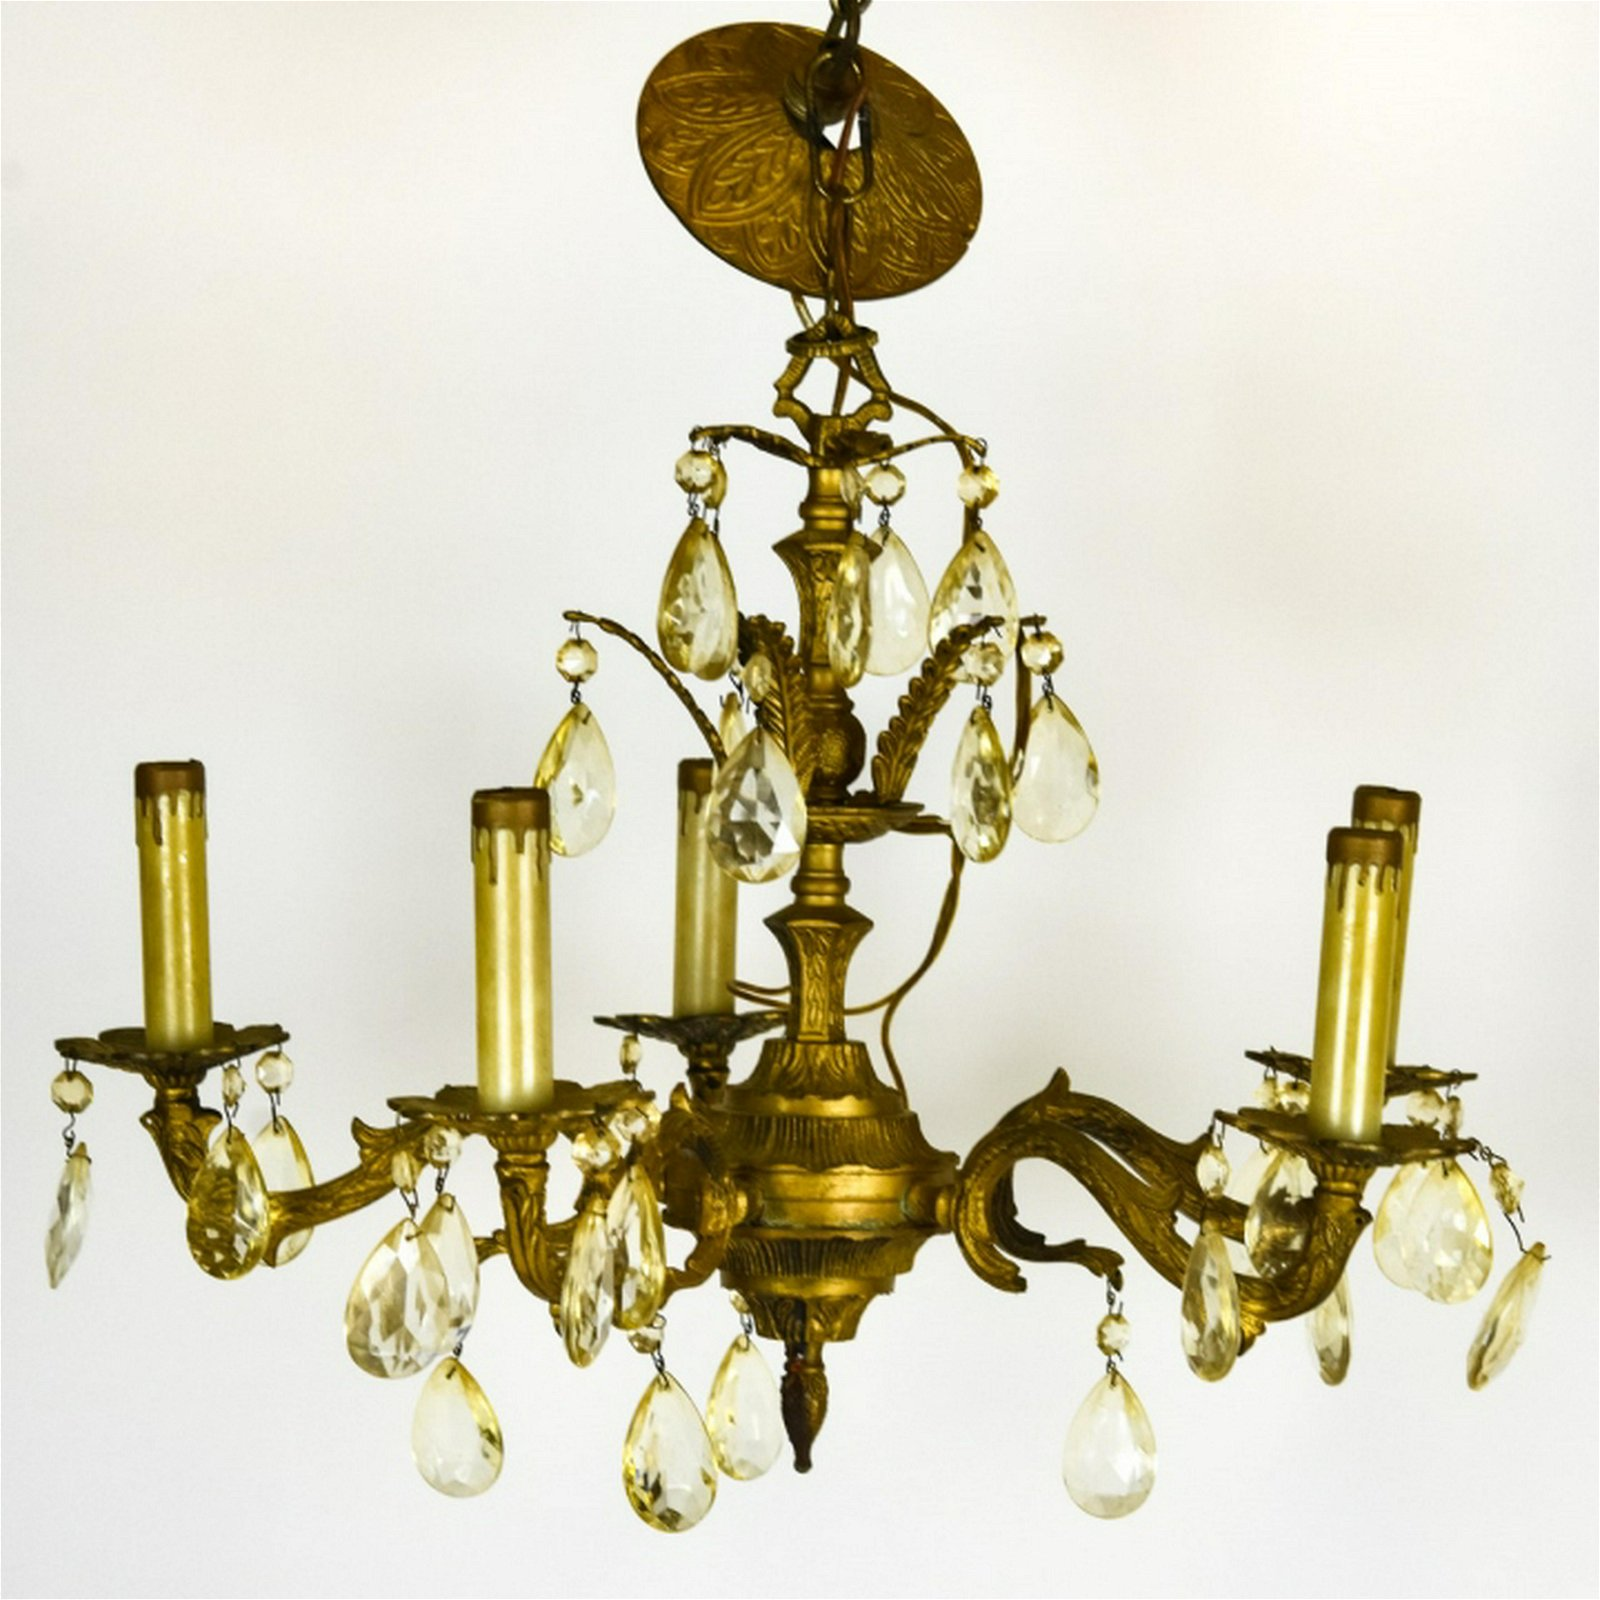 French Empire Style 5 Arm Brass Chandelier